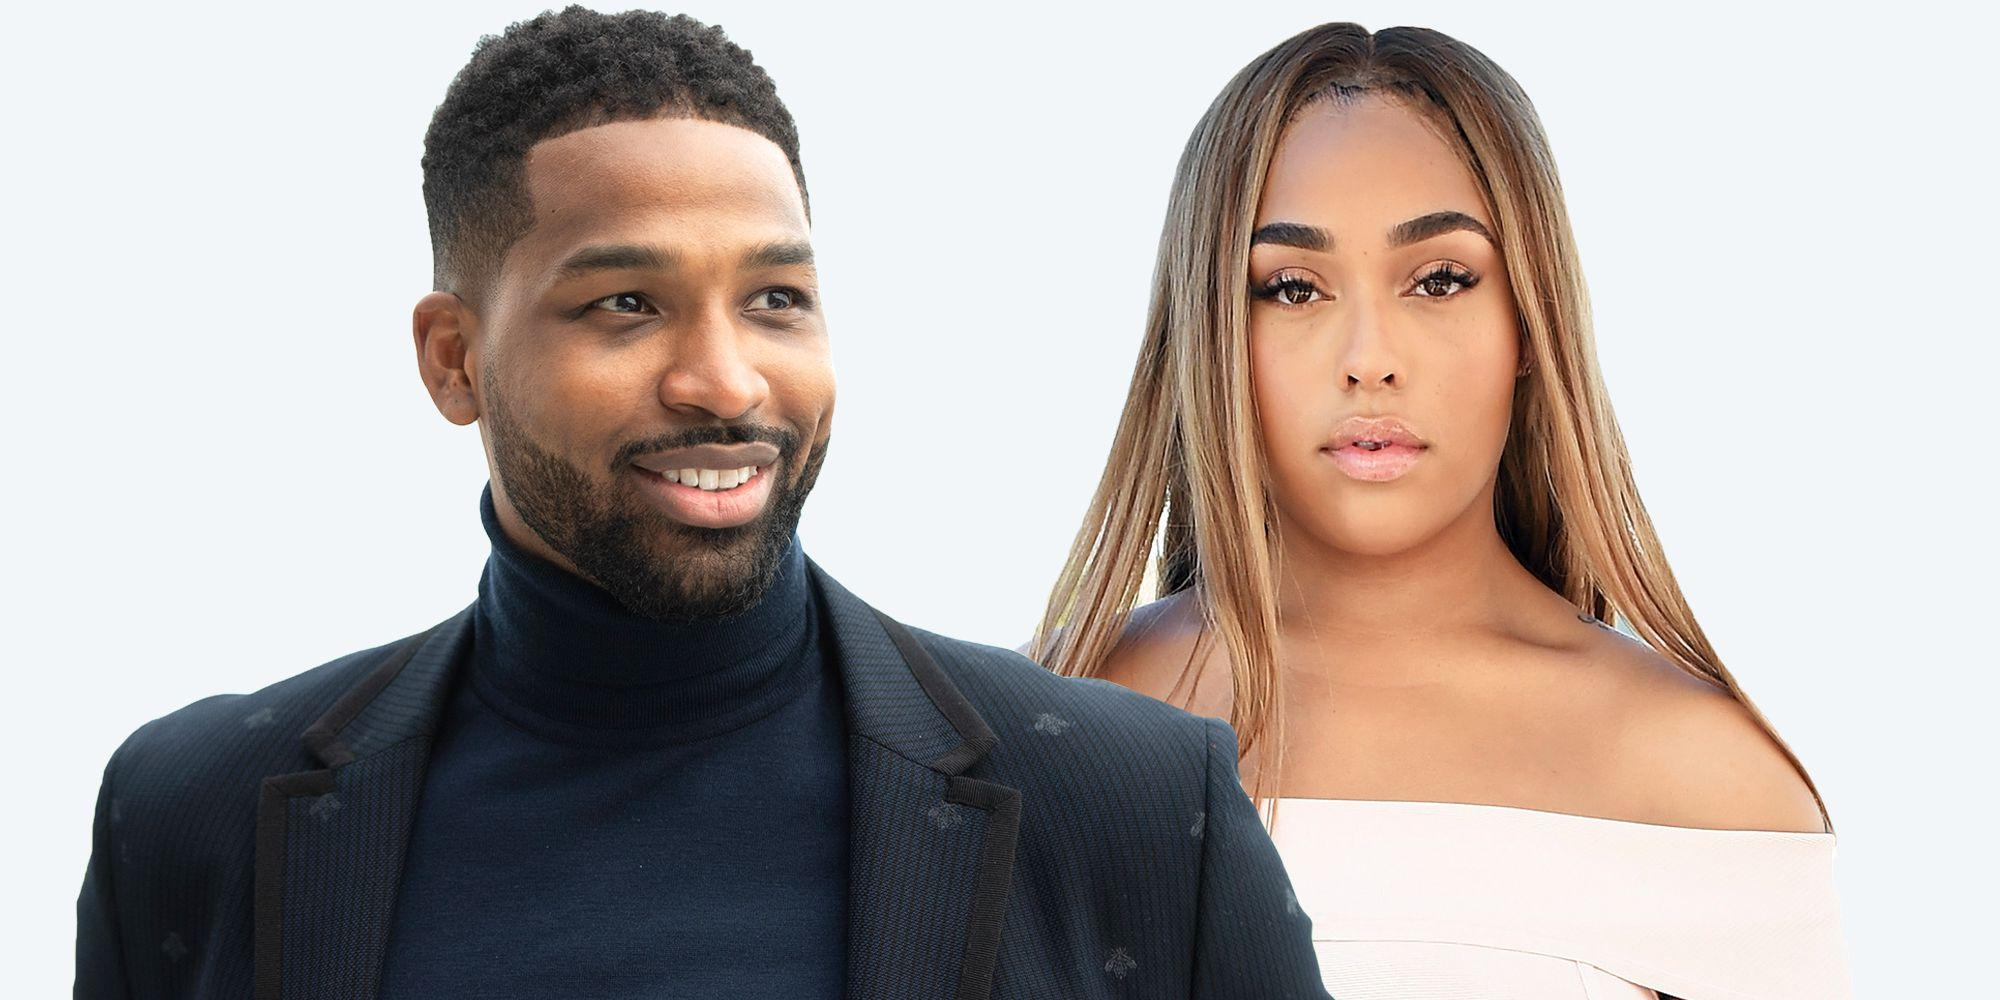 Tristan Thompson Gets Heckled With Khloe Kardashian Chant After Cheating Scandal As Jordyn Woods' Career Soars